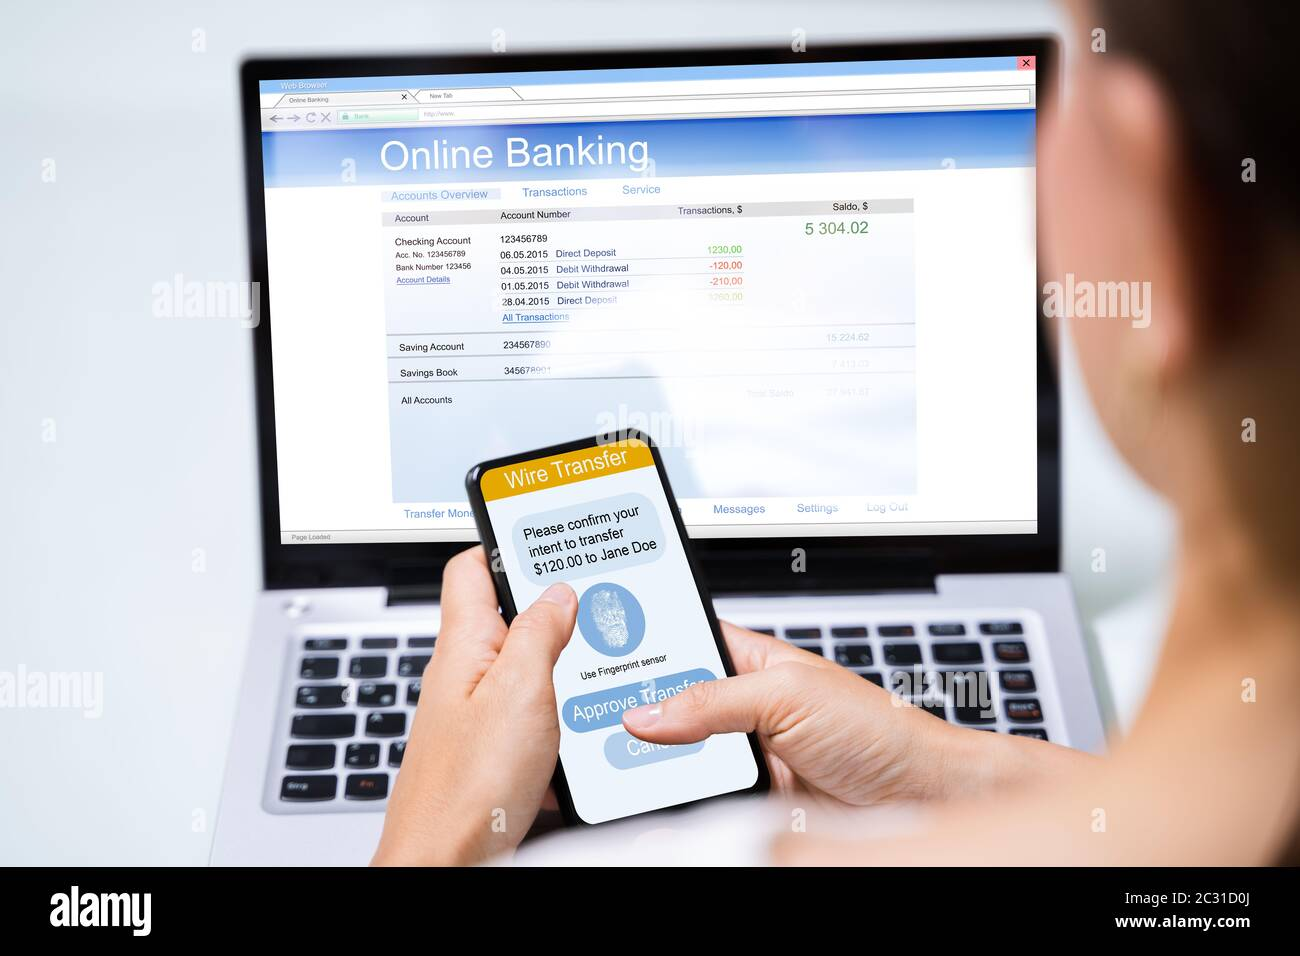 Online Banking Business App On Mobile Phone Stock Photo Alamy